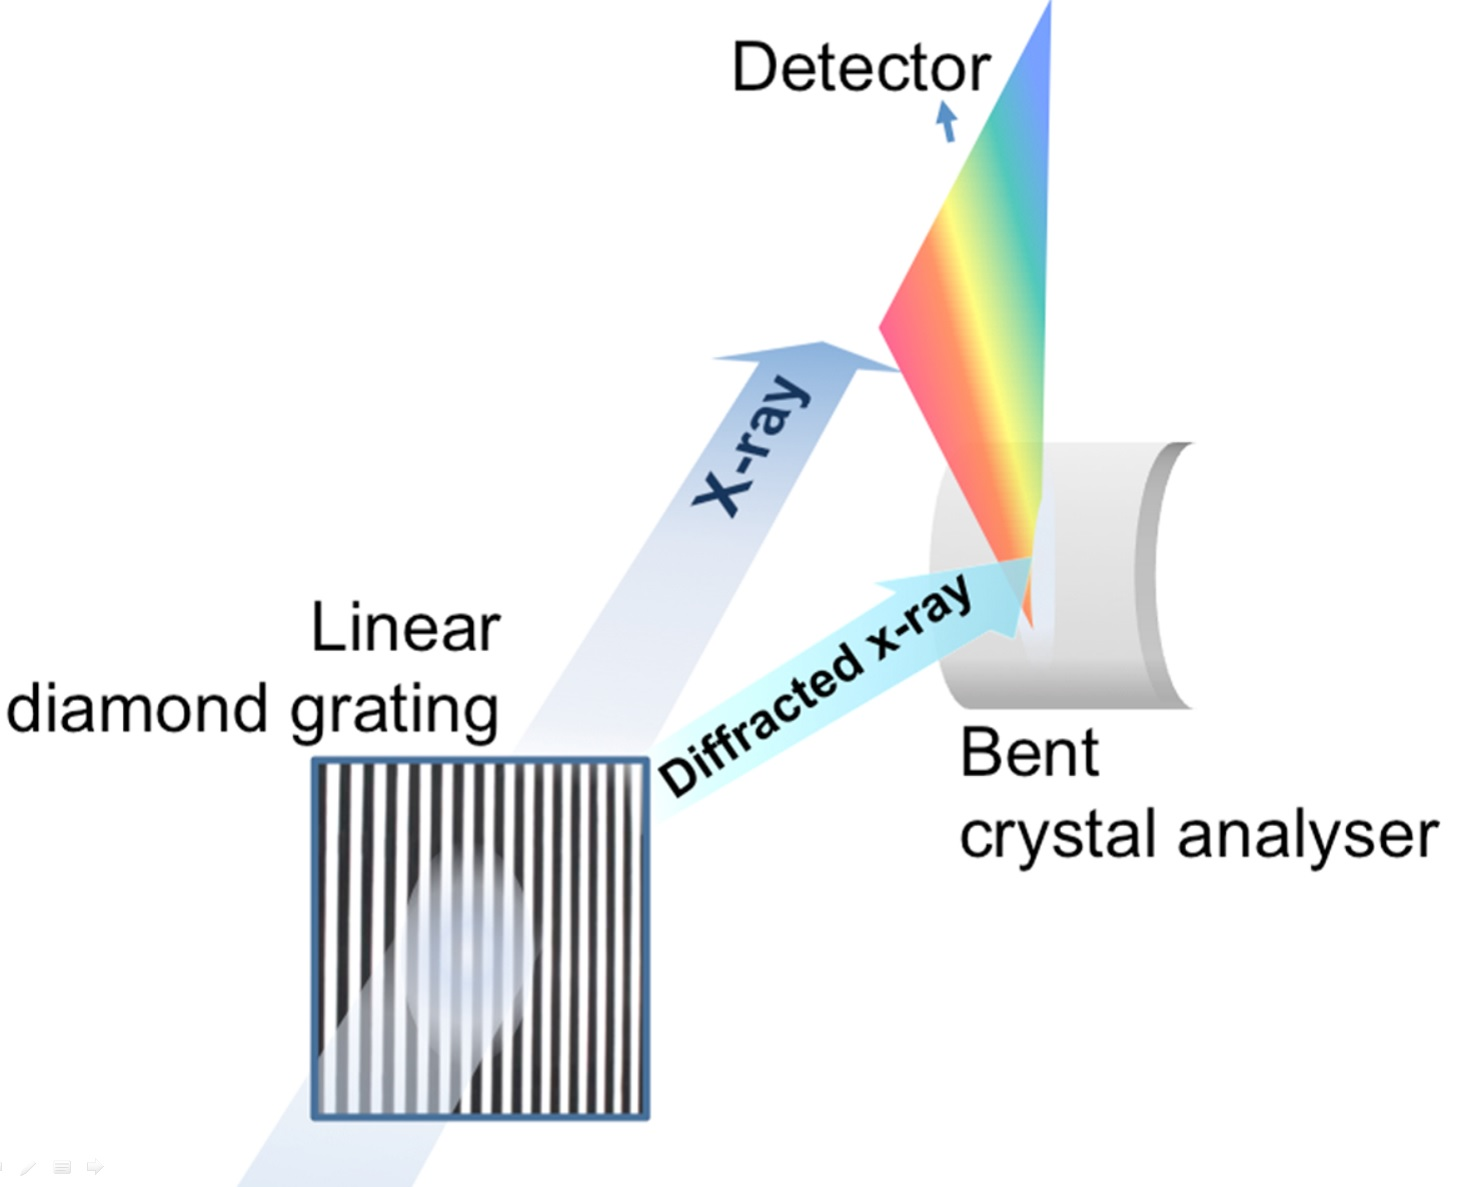 Figure 3: Schematic drawing of the setup using a linear diffraction grating. A small portion of the beam is diffracted onto a high resolution bent crystal spectrometer, and the spectra are then recorded by a fast-frame camera.